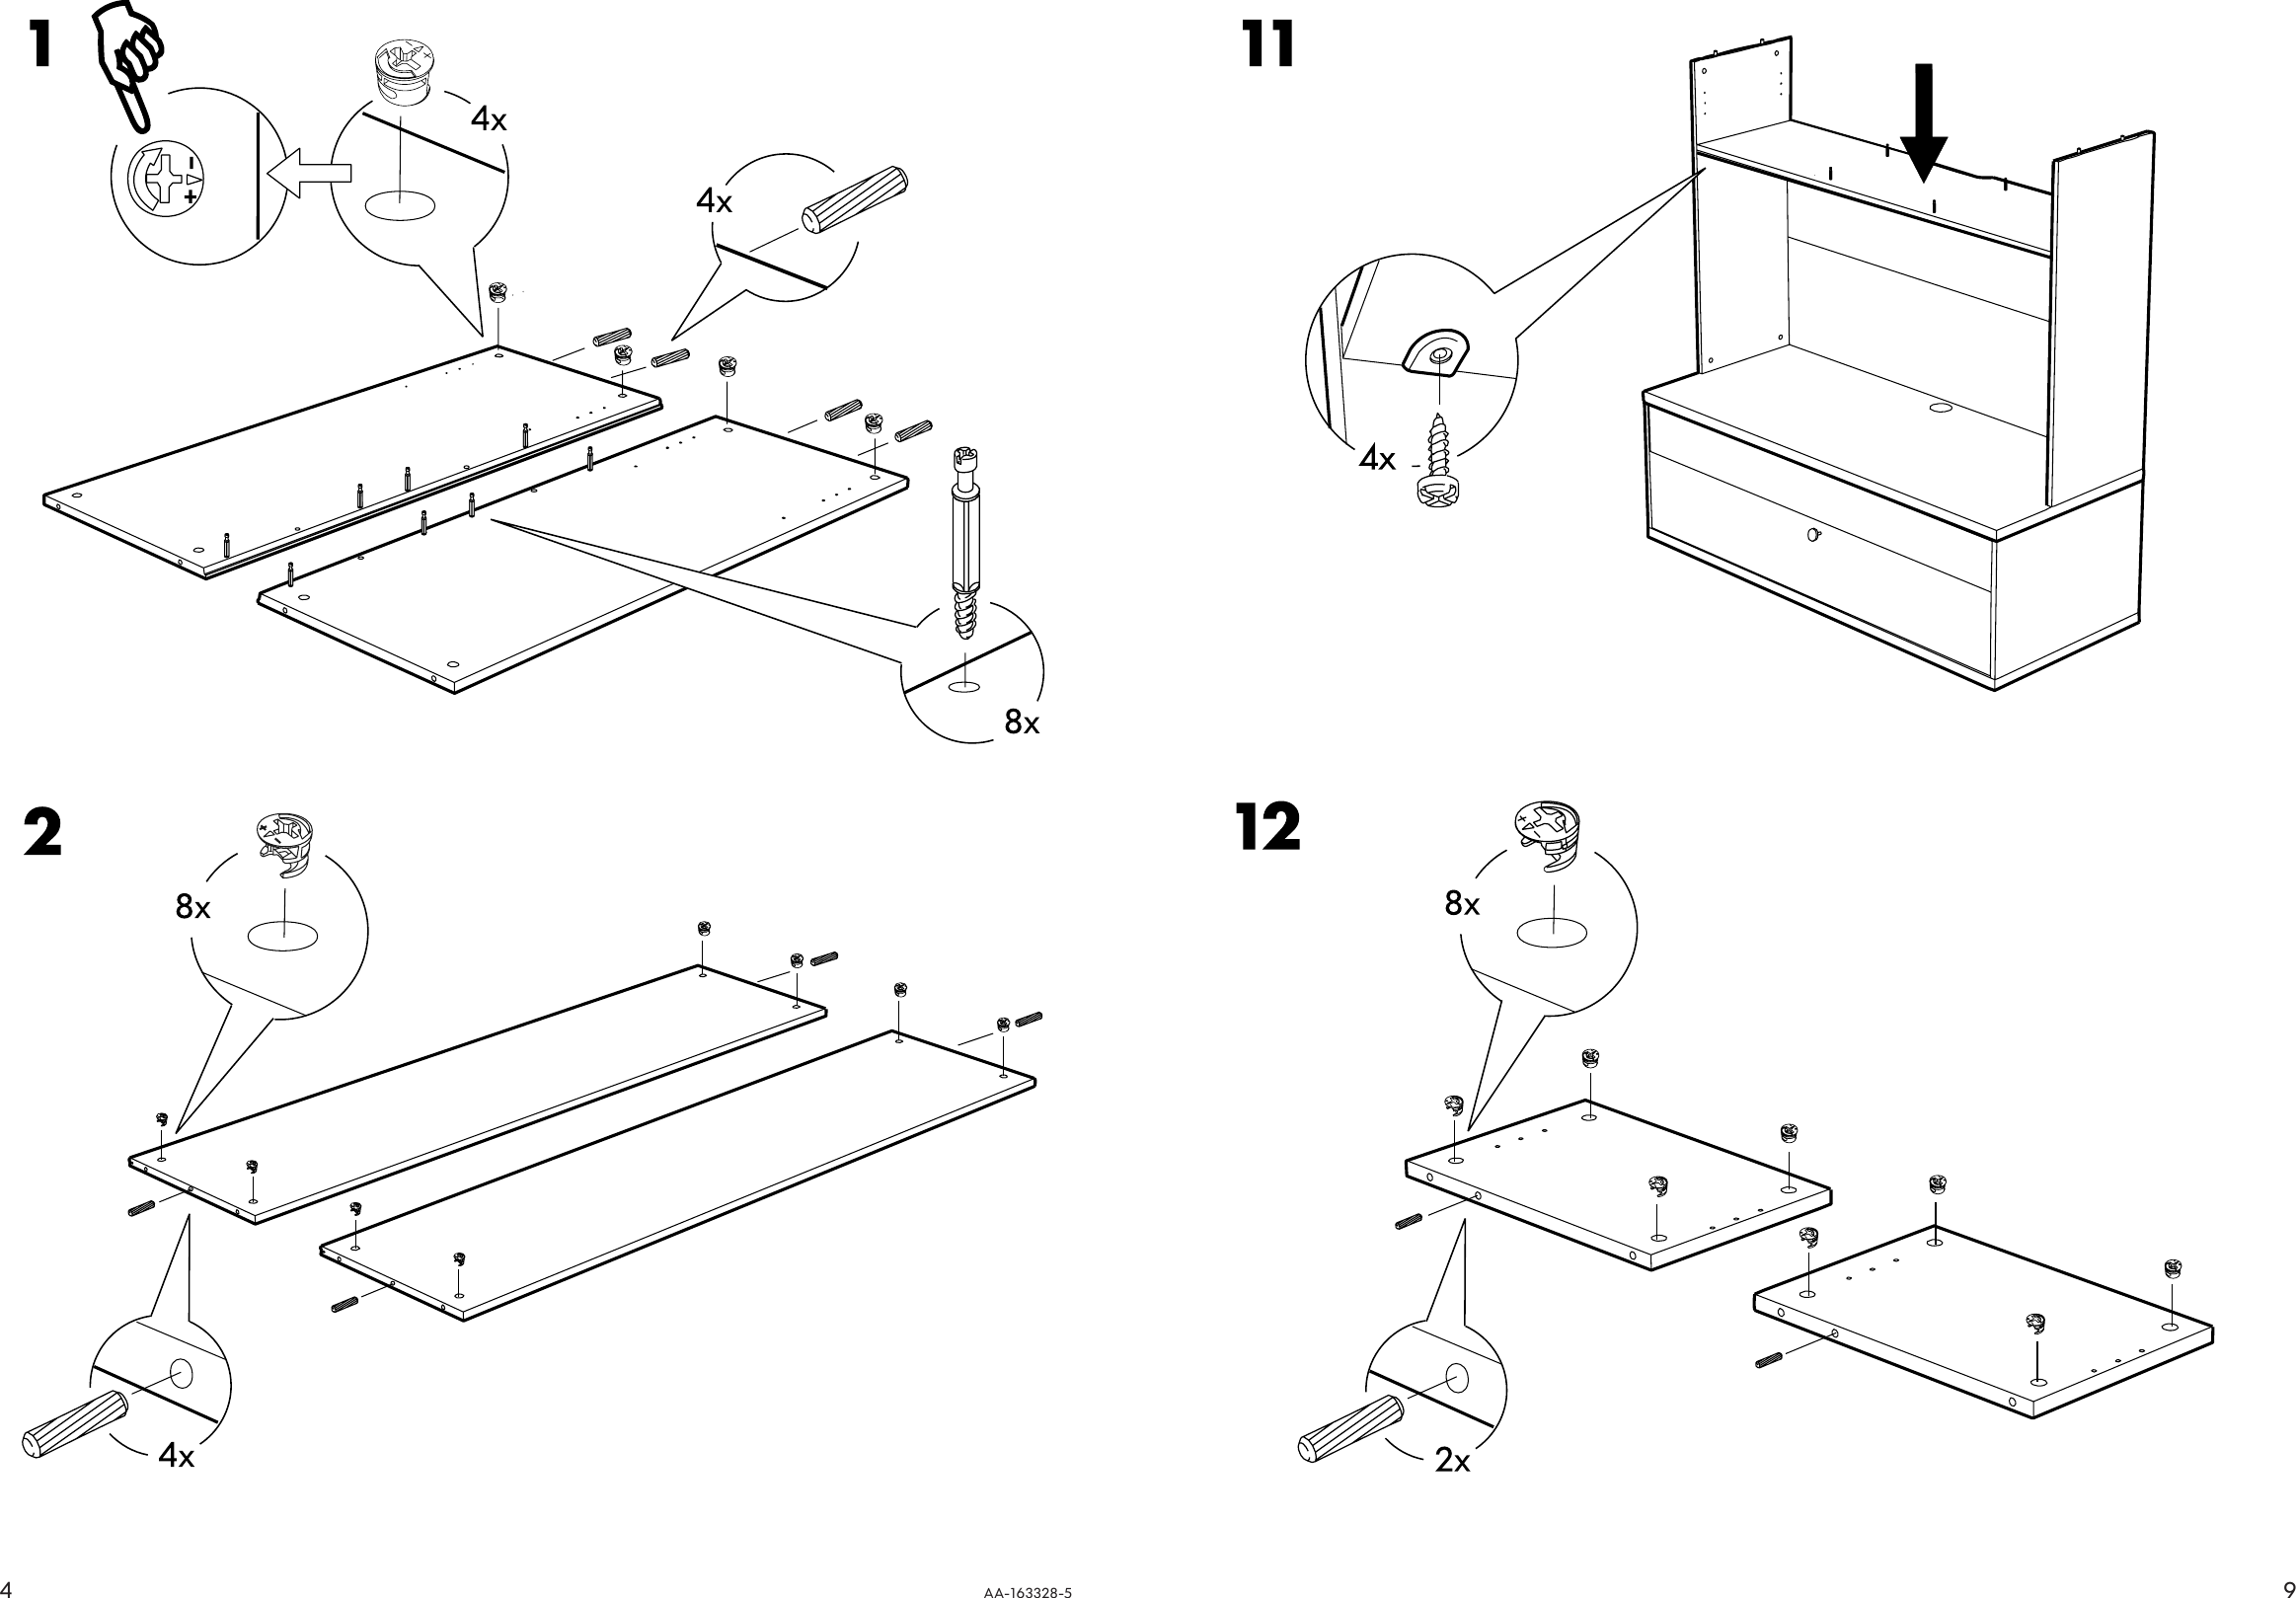 Page 4 of 6 - Ikea Ikea-Bonde-Add-On-For-Tv-Unit-57X40-Assembly-Instruction-3  Ikea-bonde-add-on-for-tv-unit-57x40-assembly-instruction